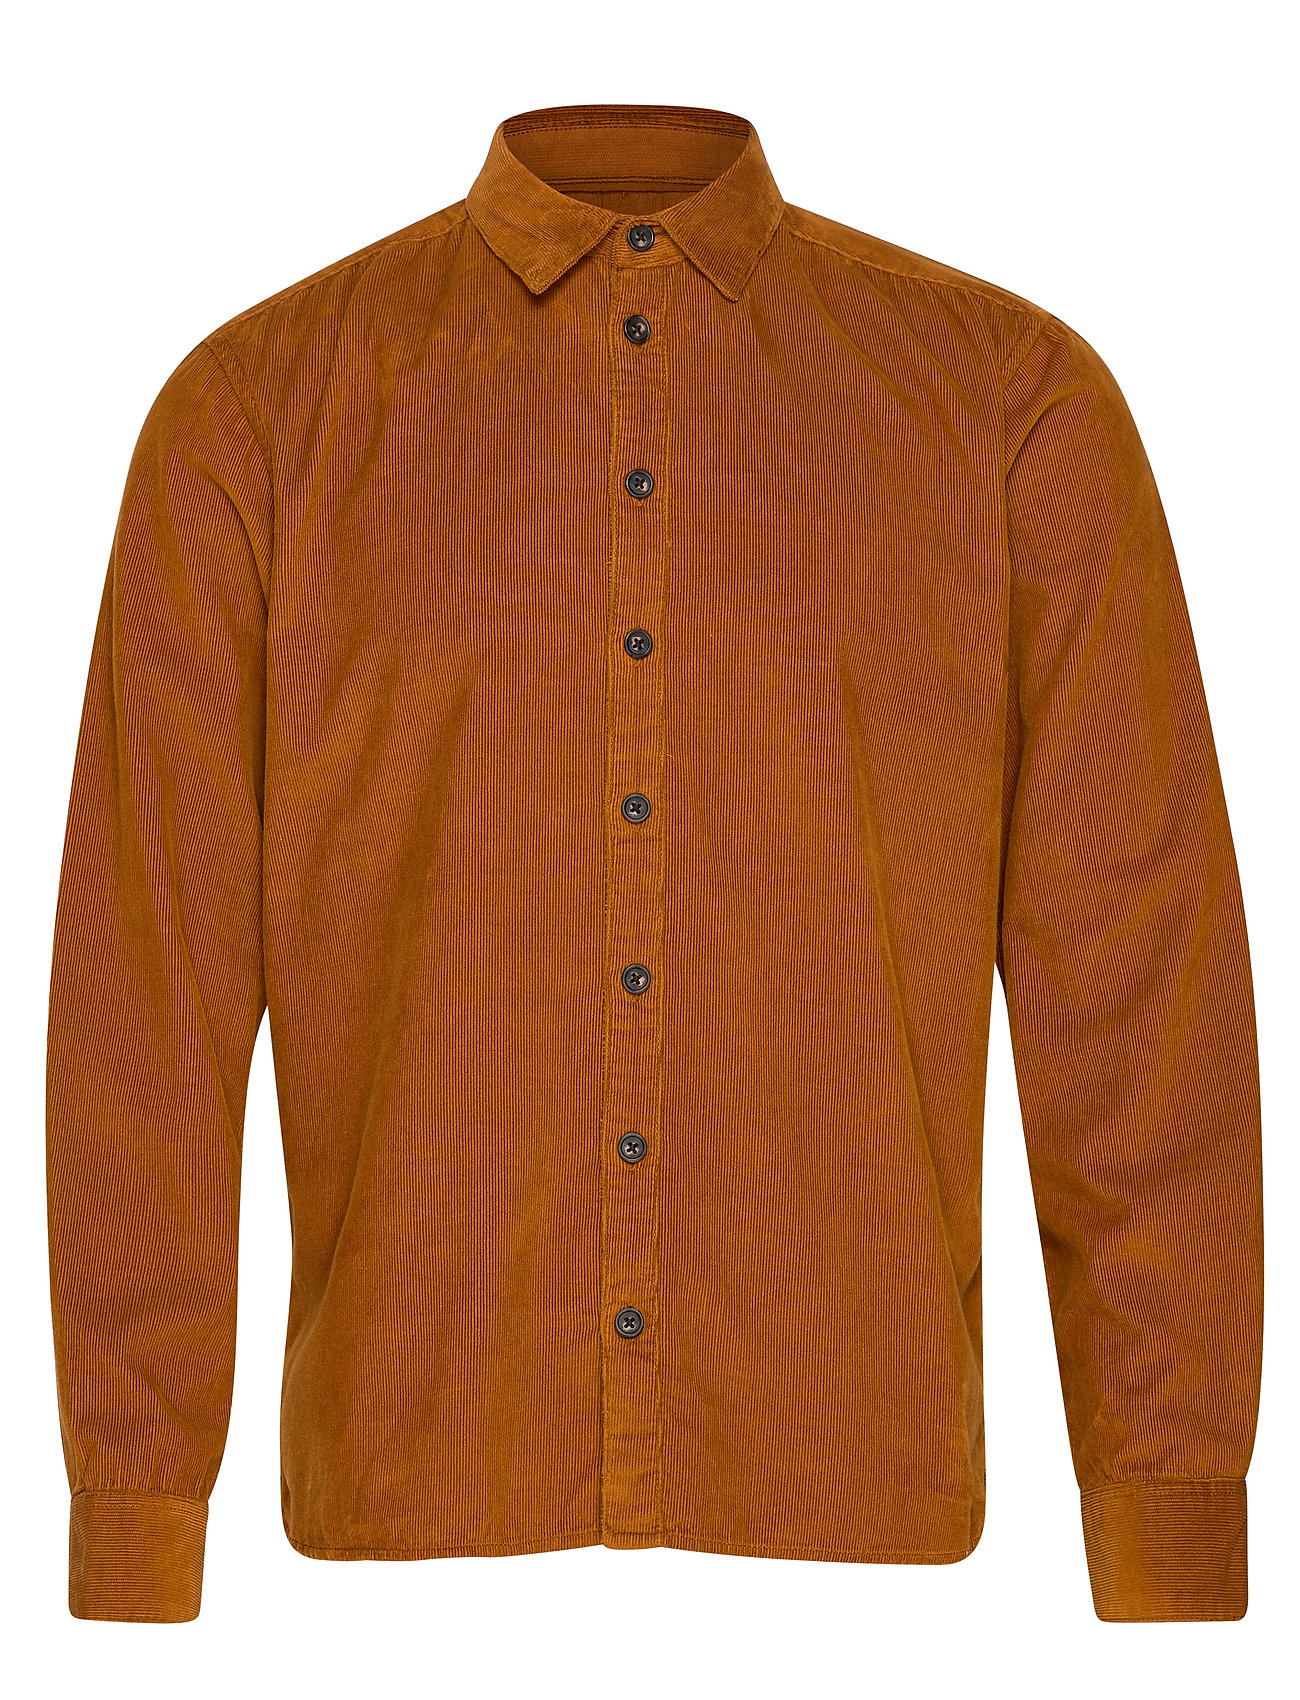 Casual Friday Shirt - CURRY SPICE